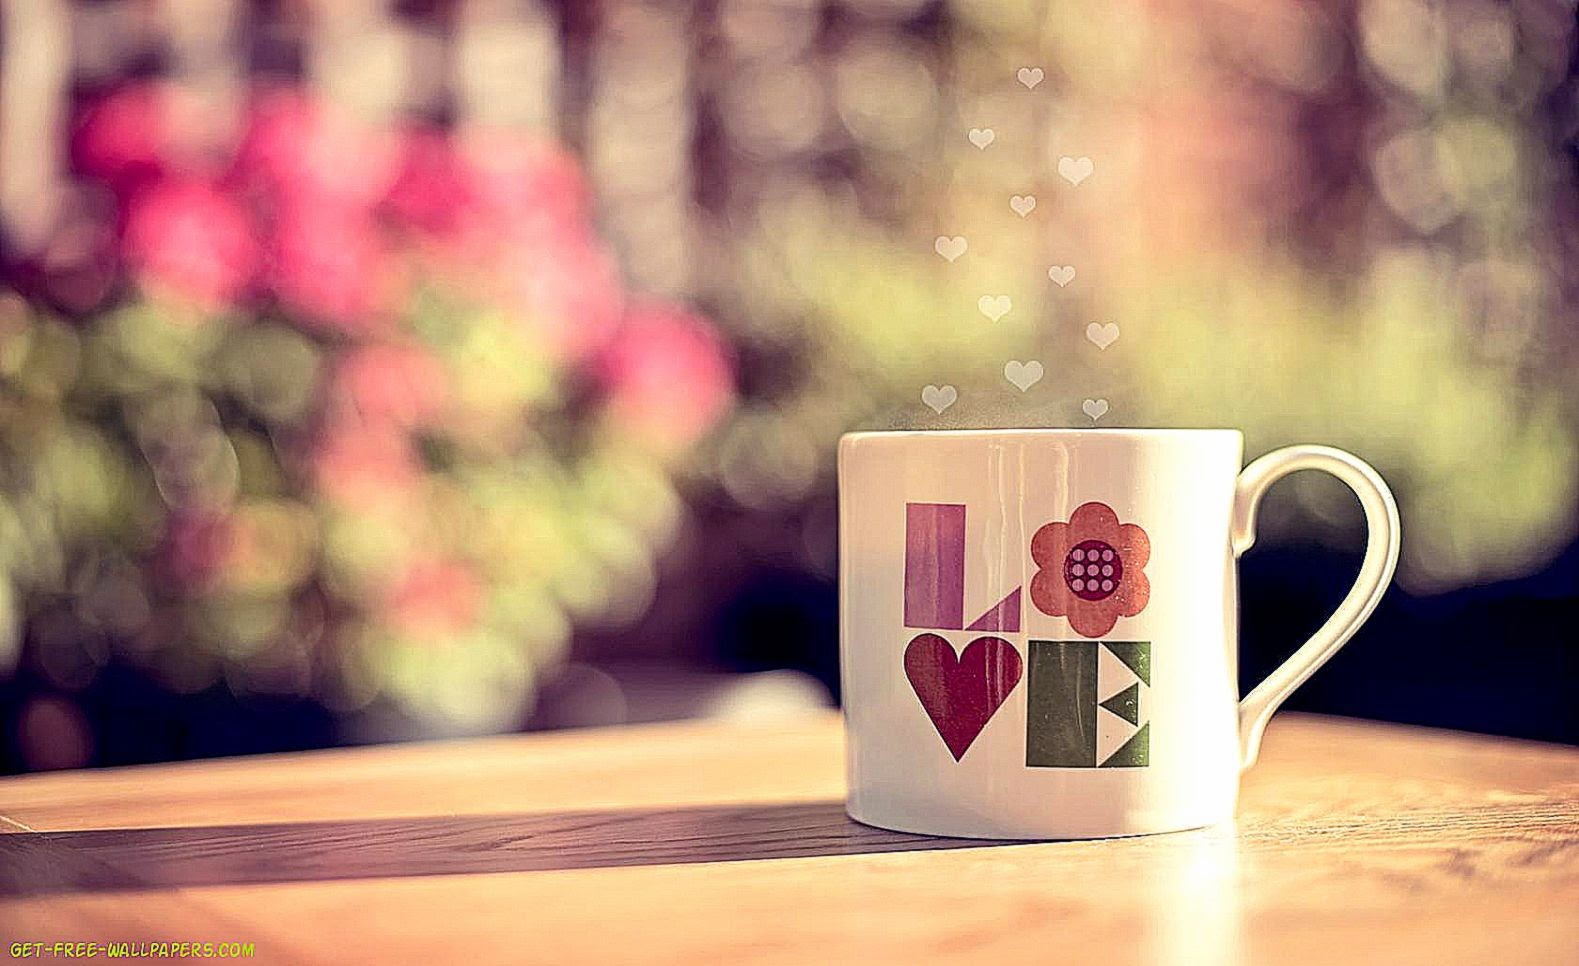 Good Morning Love Desktop Wallpaper : 3D Love coffee Wallpapers Hd Desktop Wallpaper Background Gallery